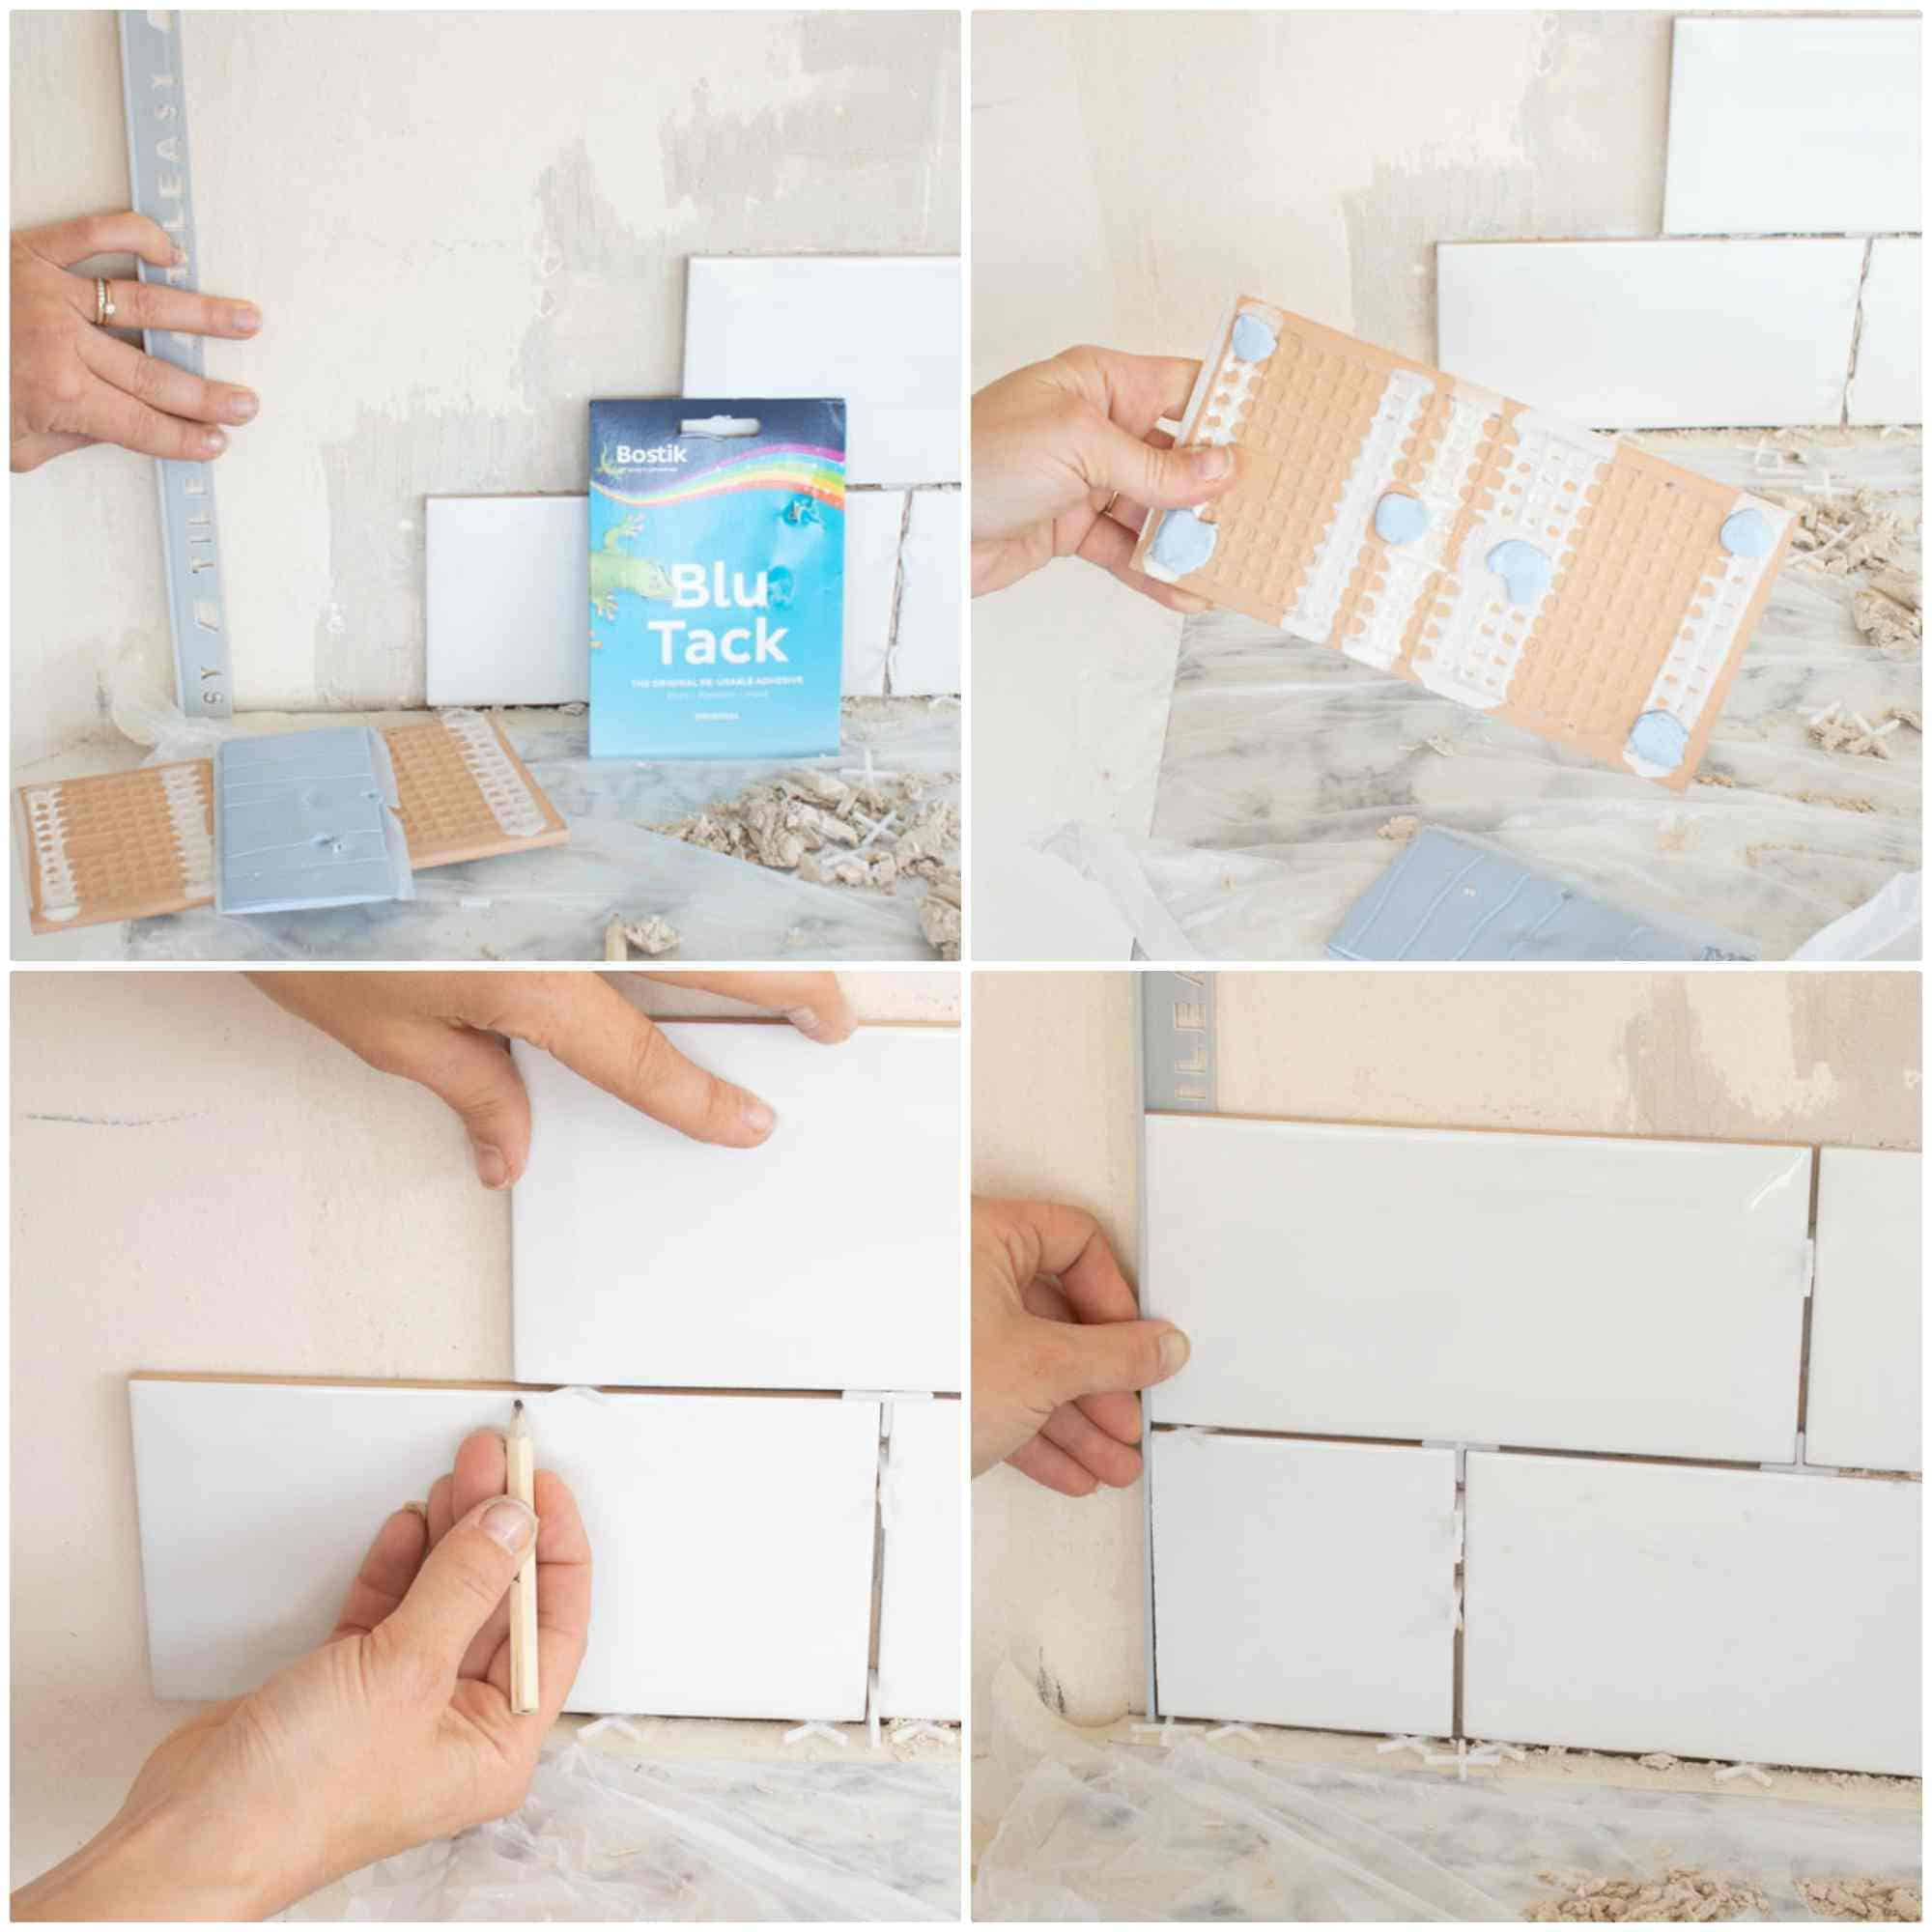 doing a dry lay with tiles and blu tack